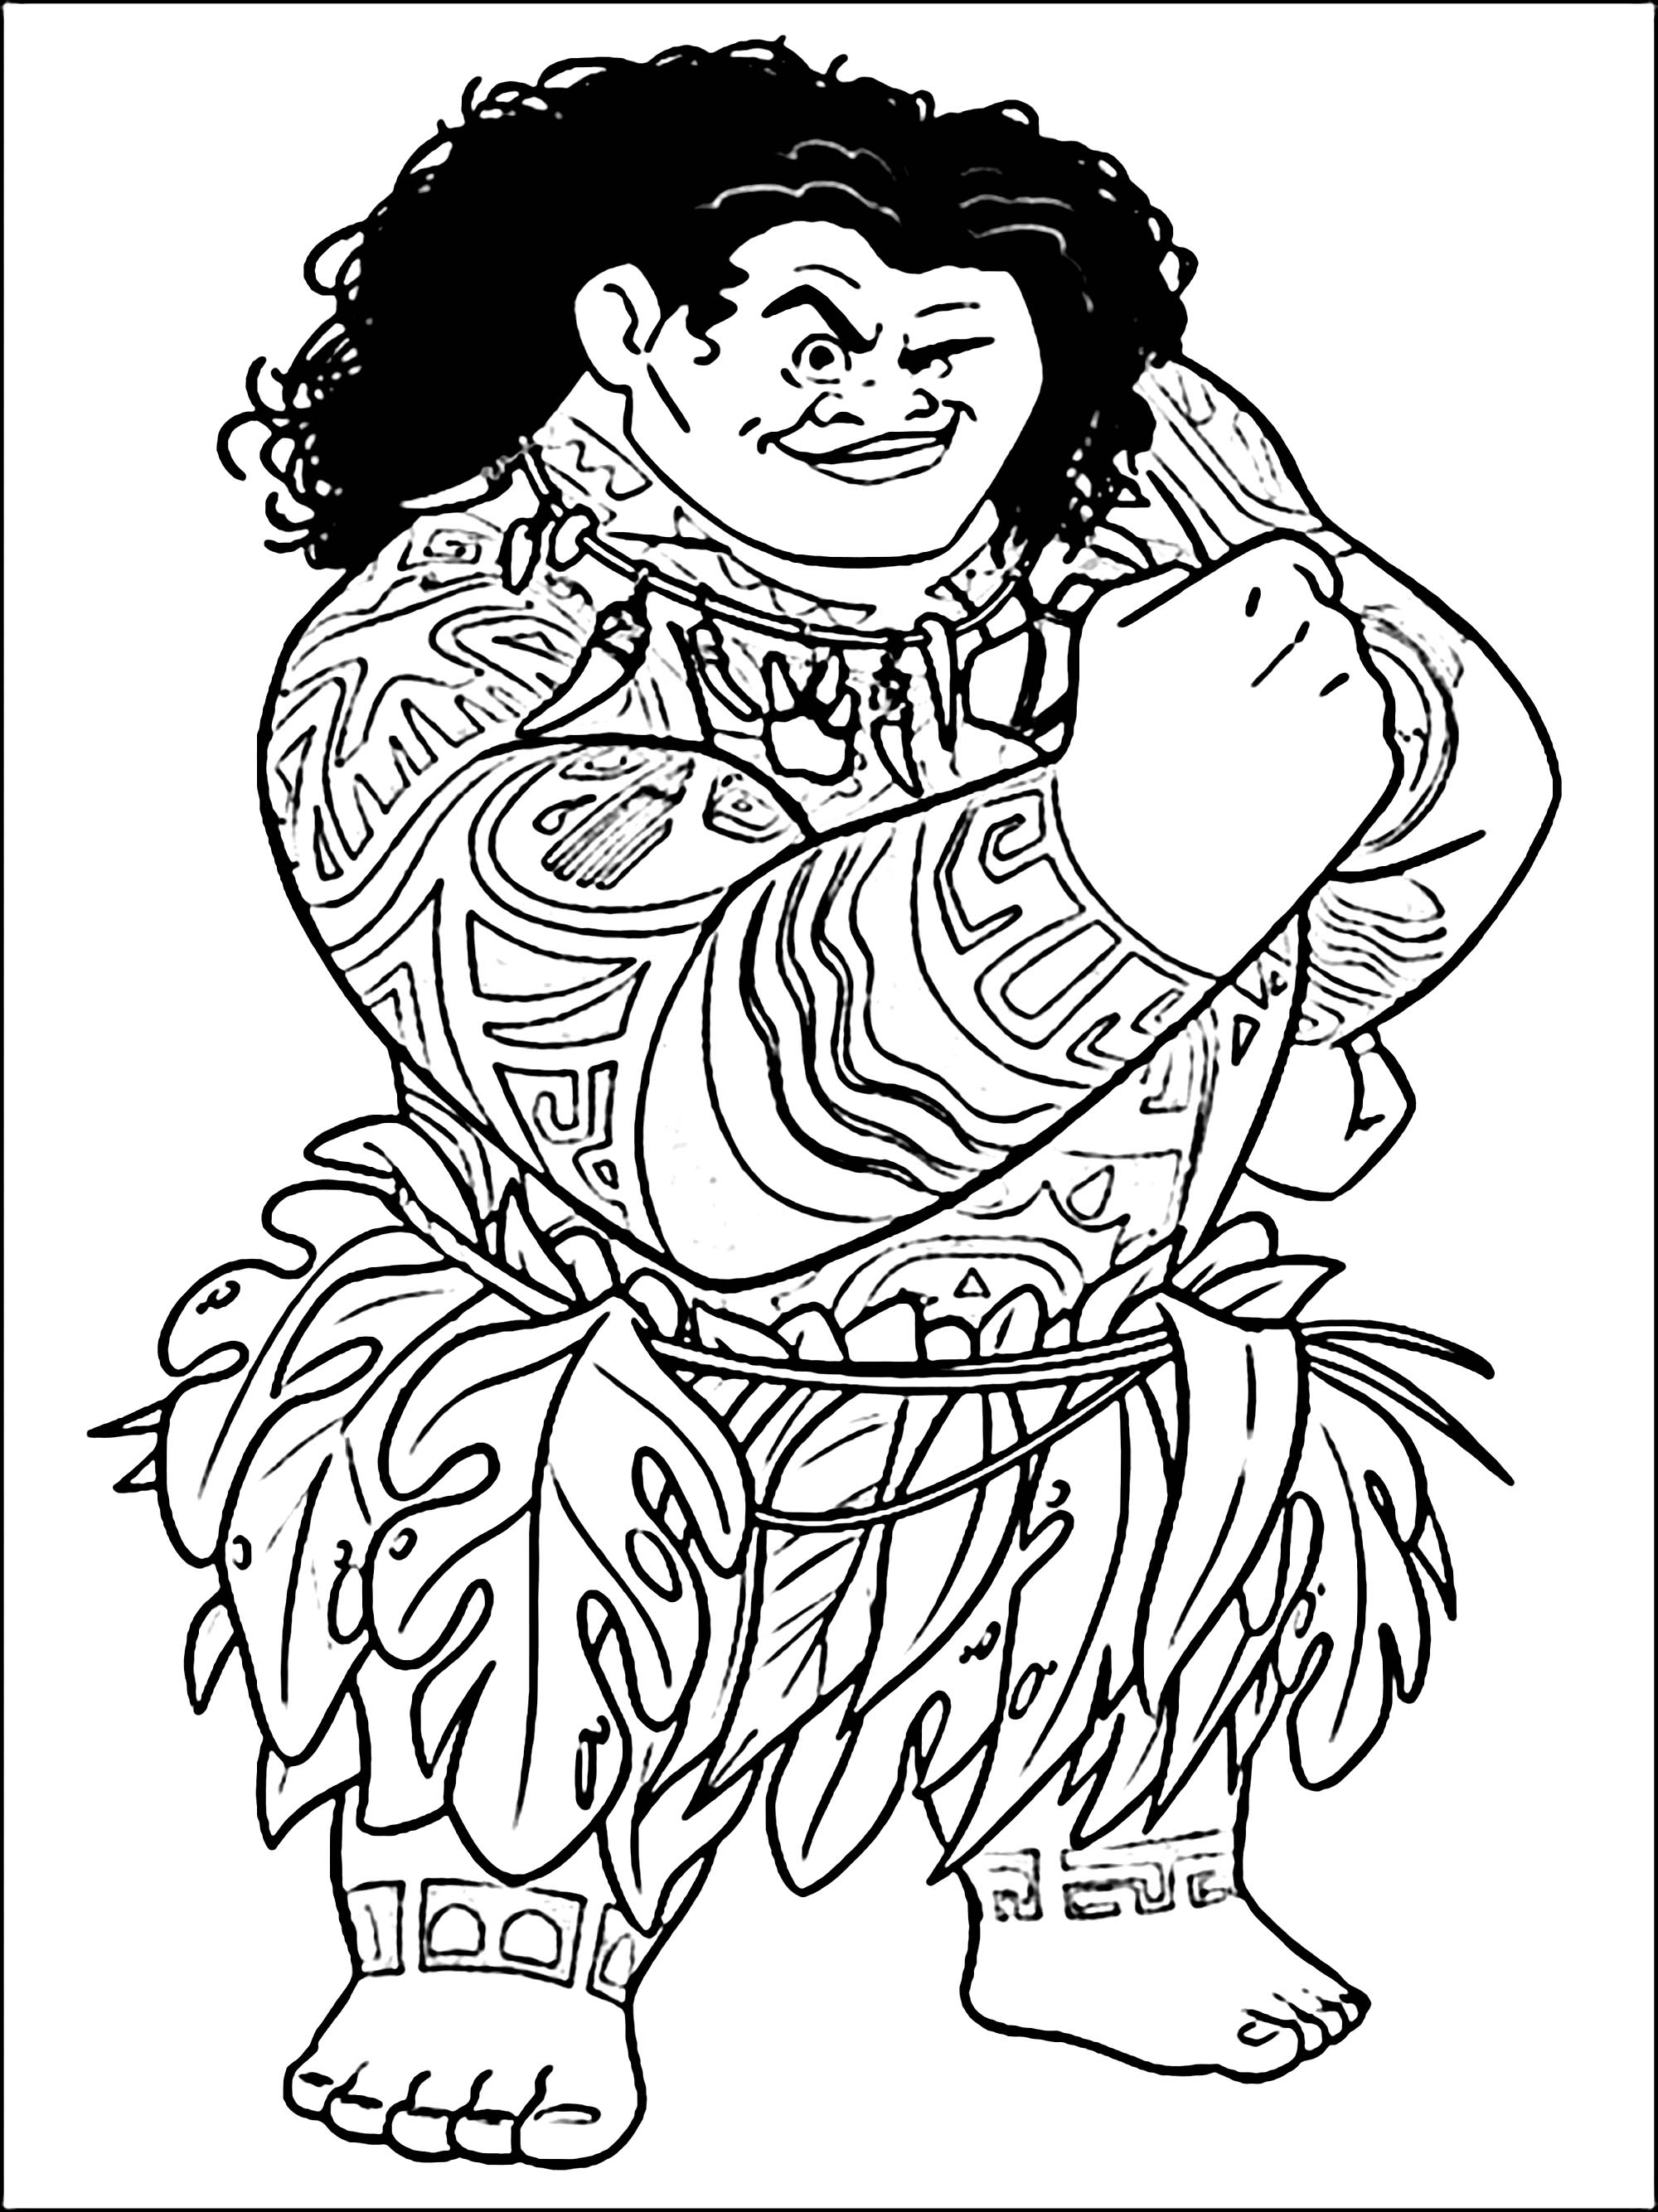 Simple Moana coloring page to print and color for free : Chief Tui and all his tattoos